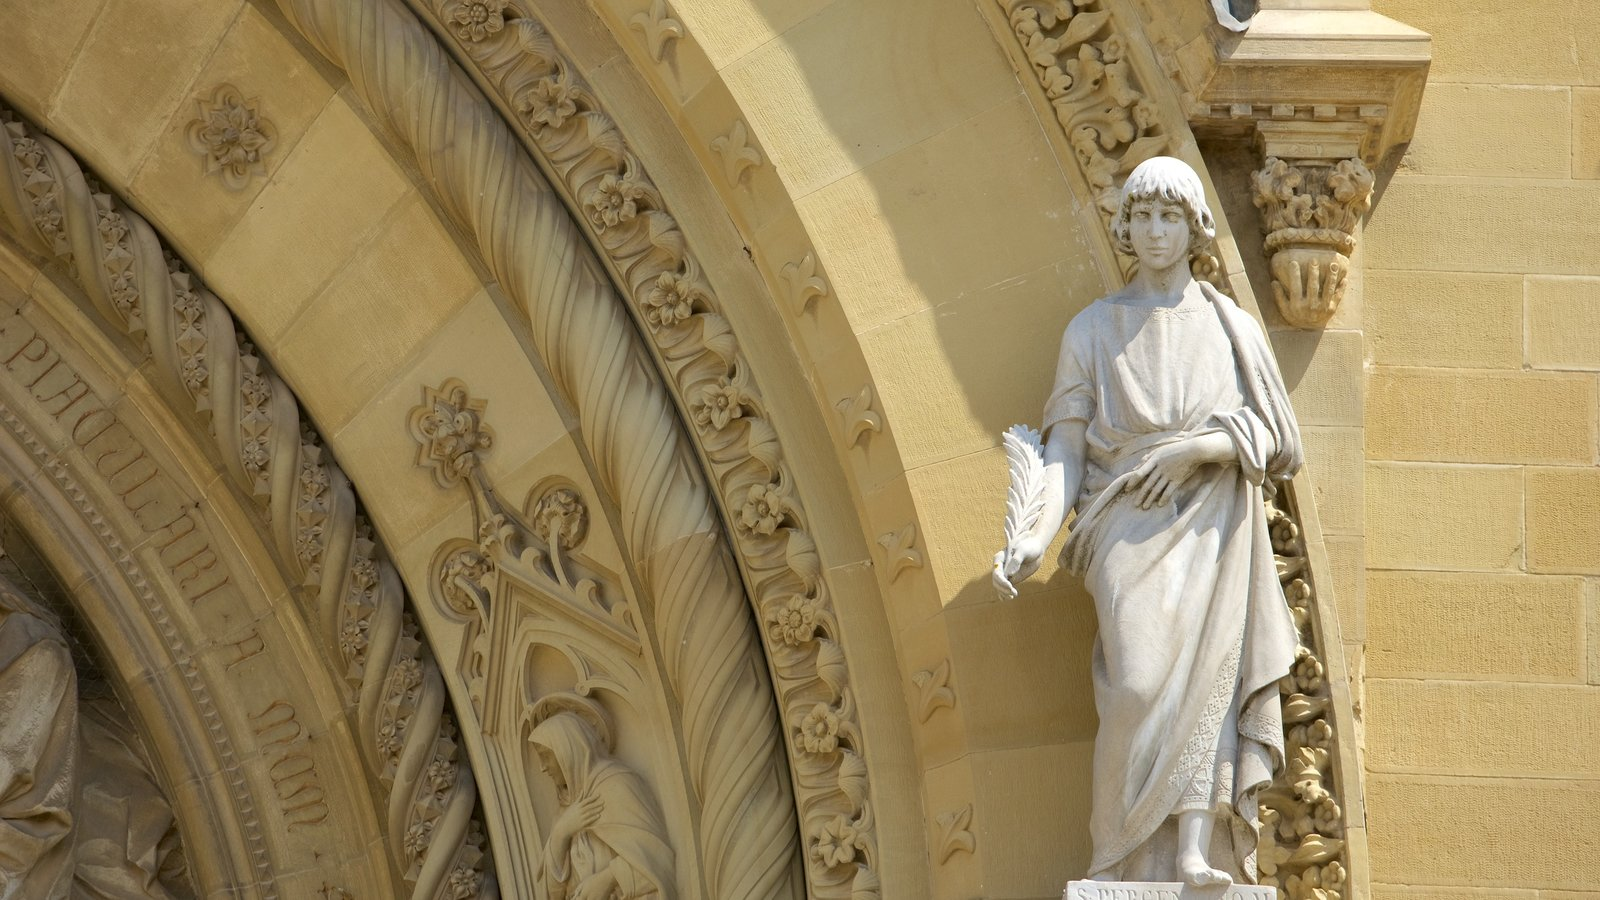 Cathedral of Arezzo featuring a statue or sculpture, a church or cathedral and religious elements